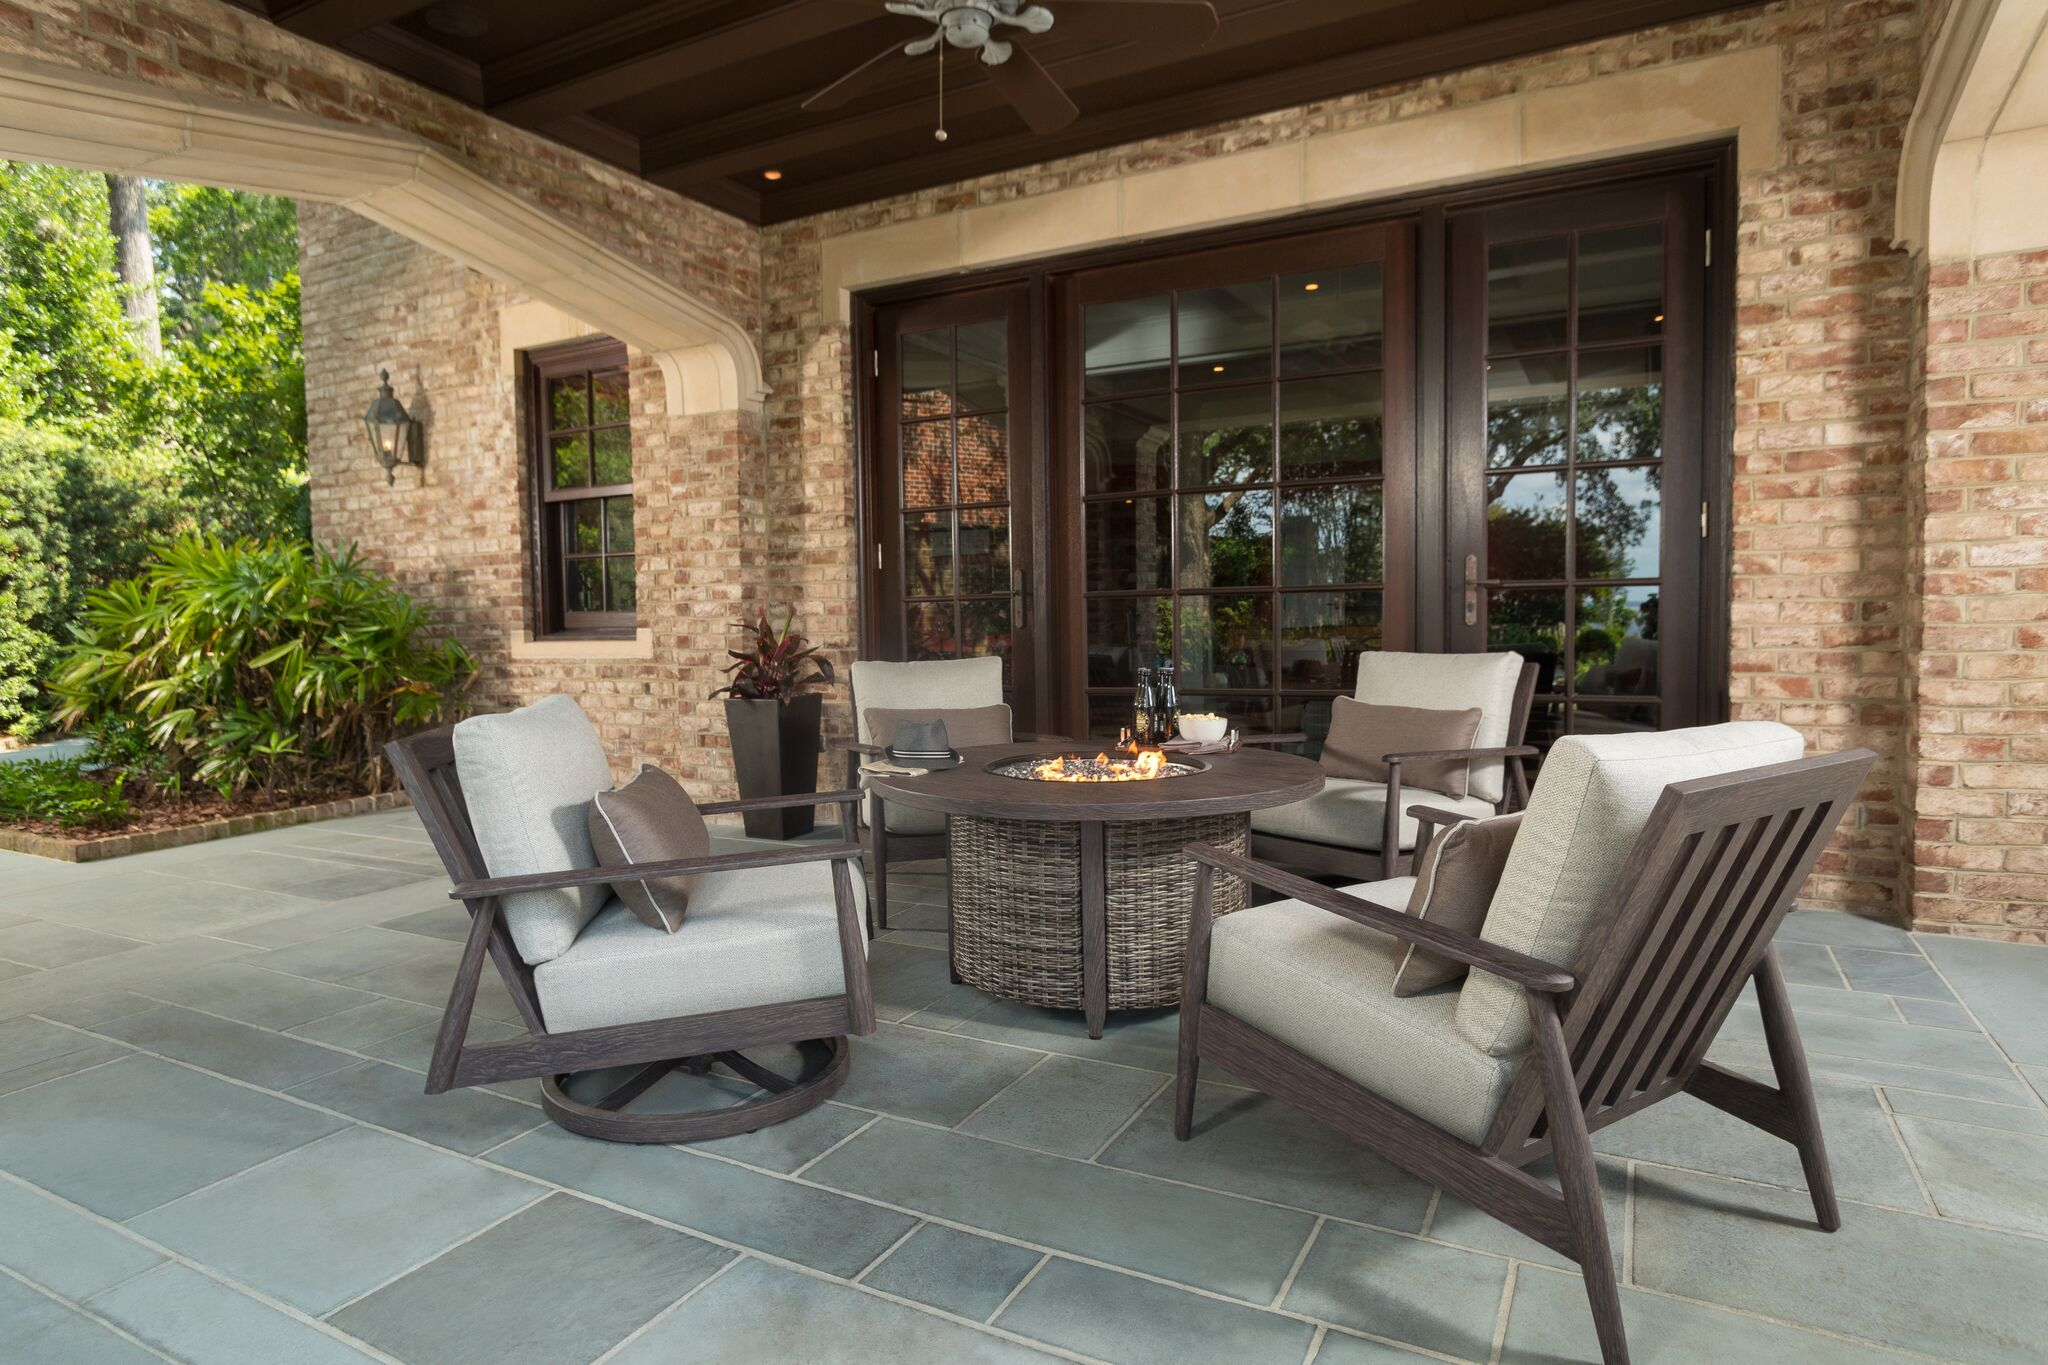 Outdoor Seating San Antonio Outdoor Furniture Patio Furniture Dining Firepits Home Patio Patio Outdoor Patio Furniture Outdoor Seating